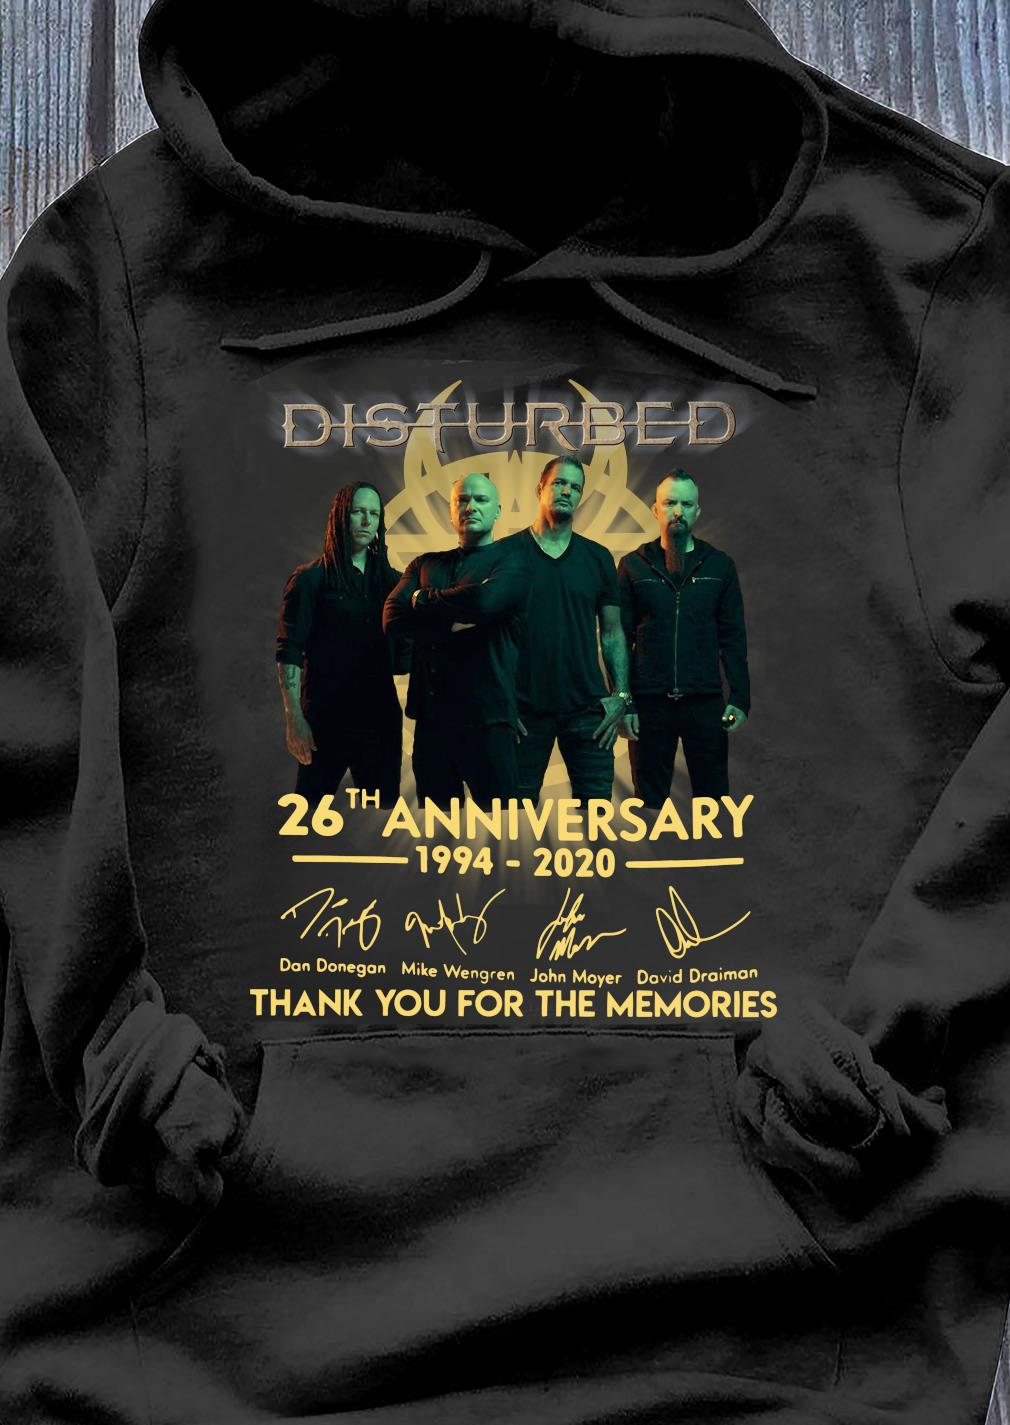 Disturbed 26th Anniversary 1994 2020 Thank You For The Memories Shirt Hoodie